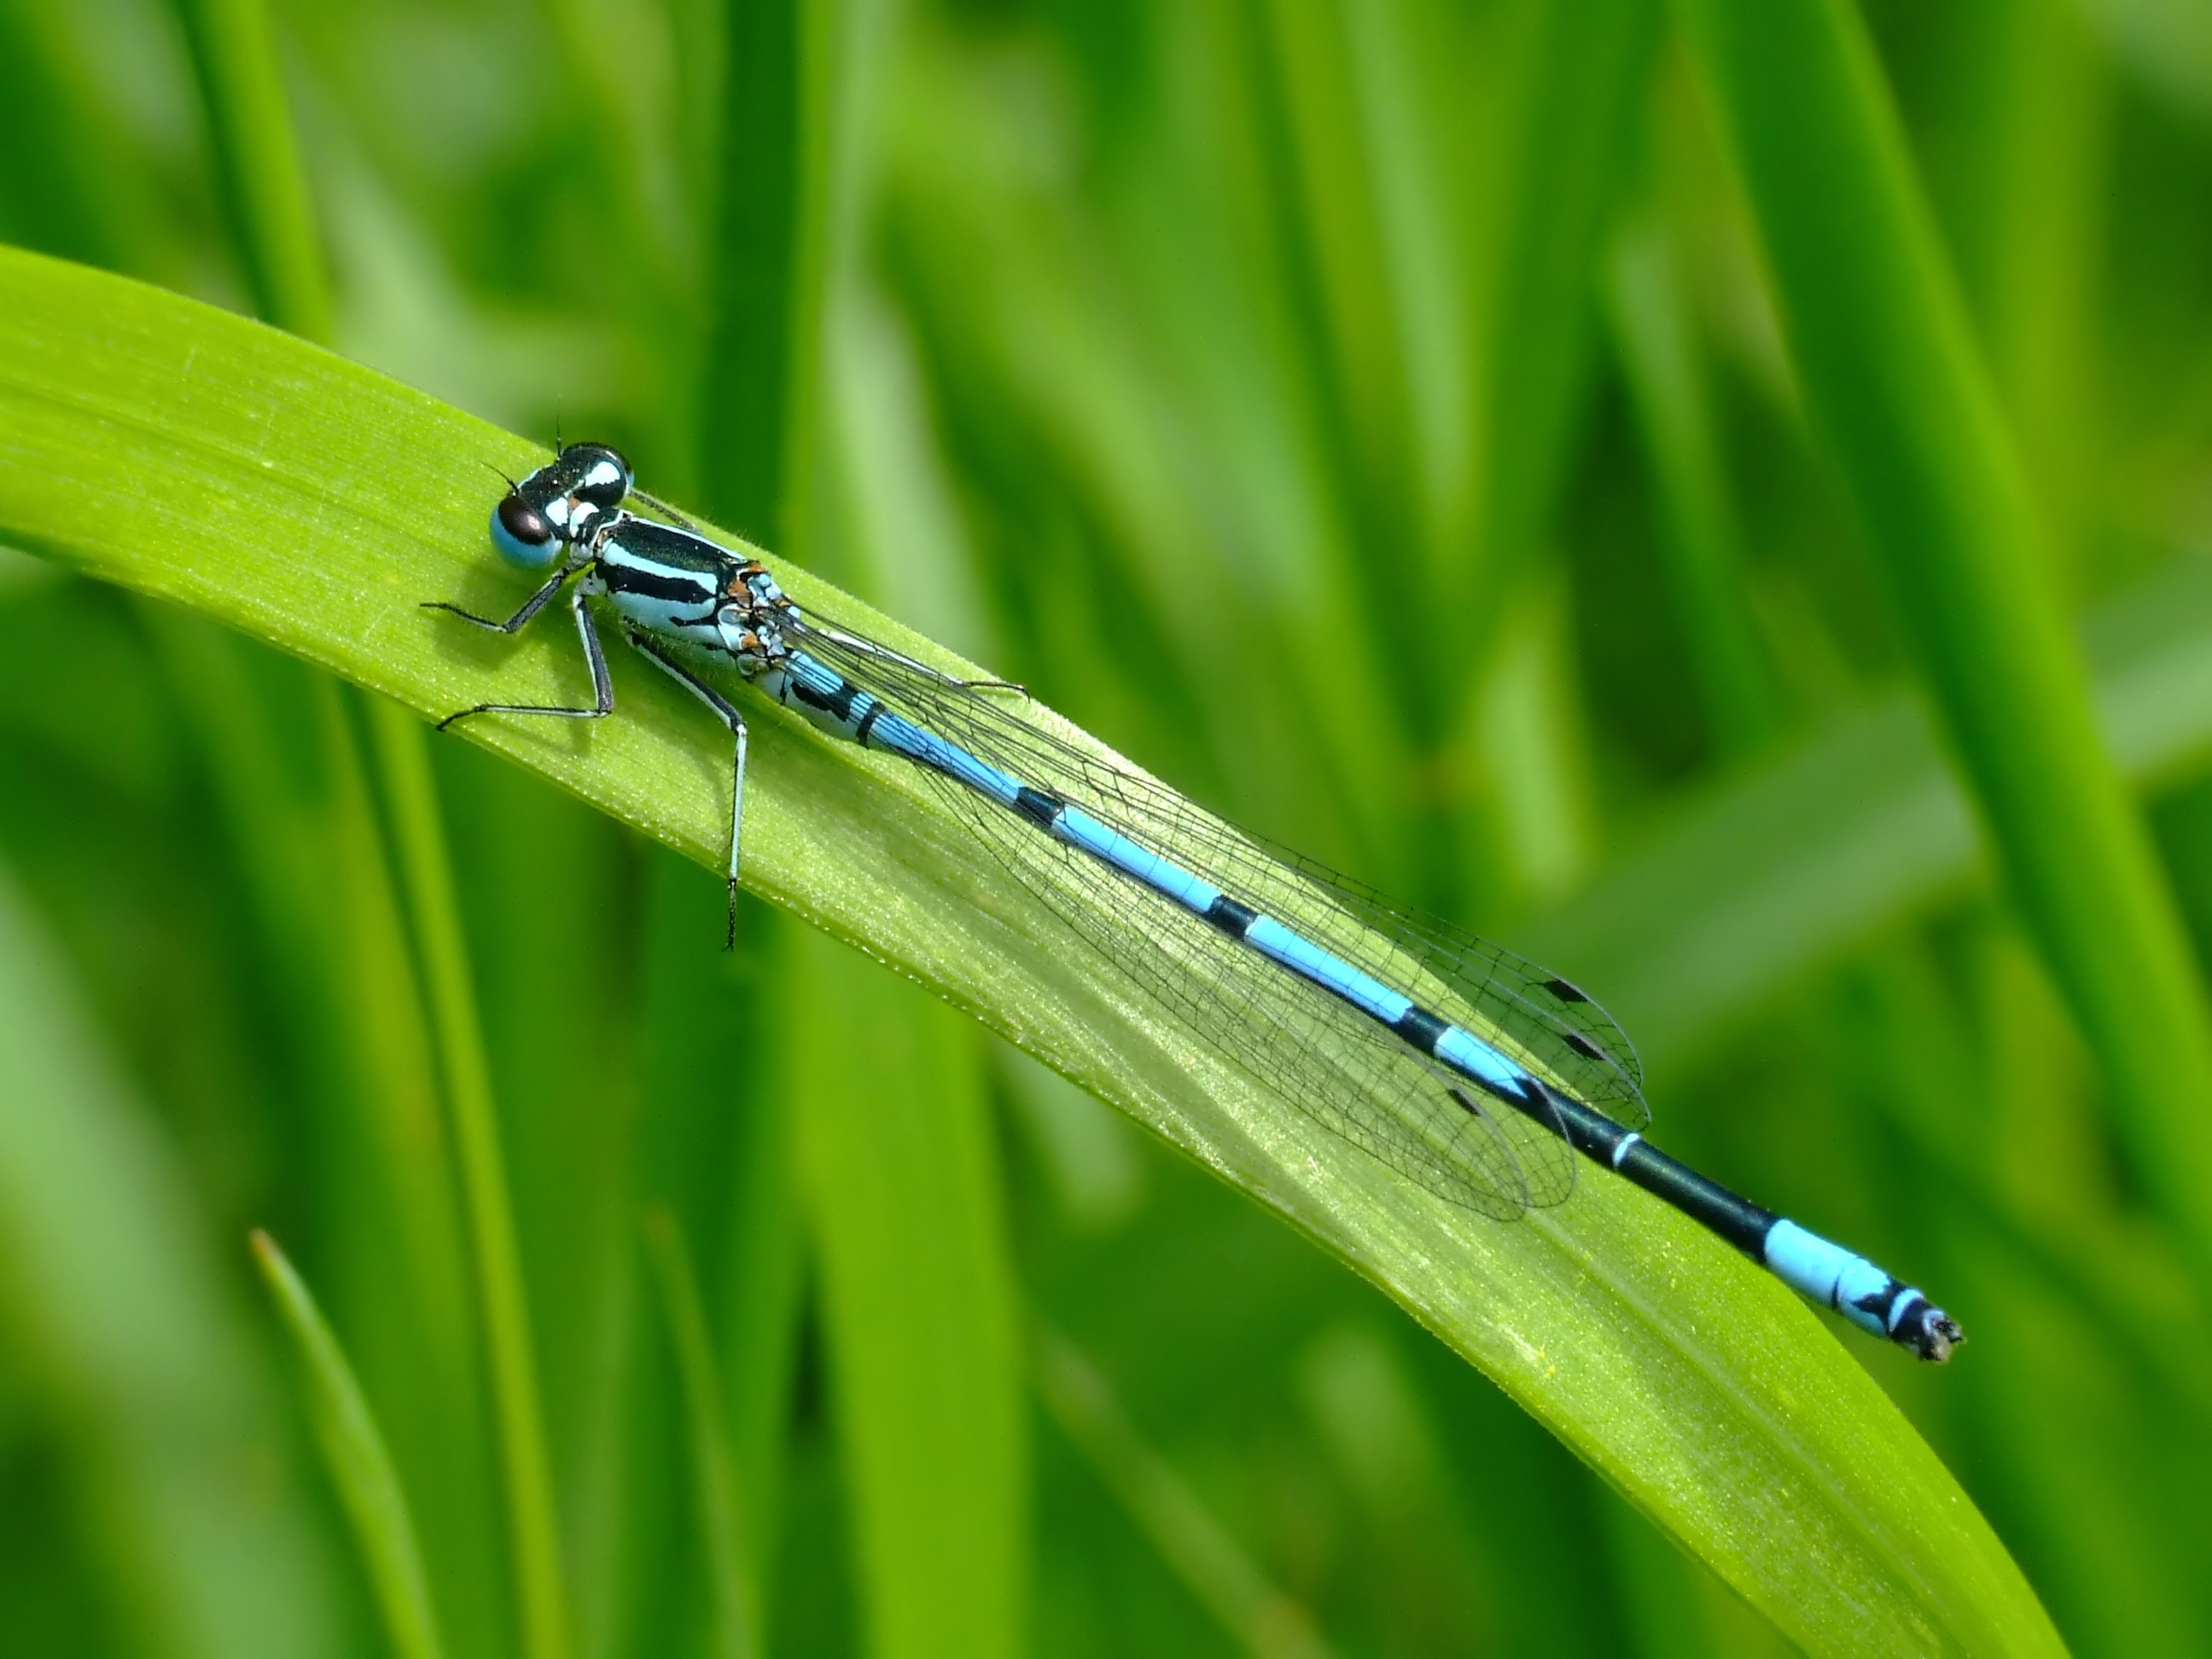 127568 download wallpaper Macro, Dragonfly, Blade Of Grass, Blade, Green Background screensavers and pictures for free